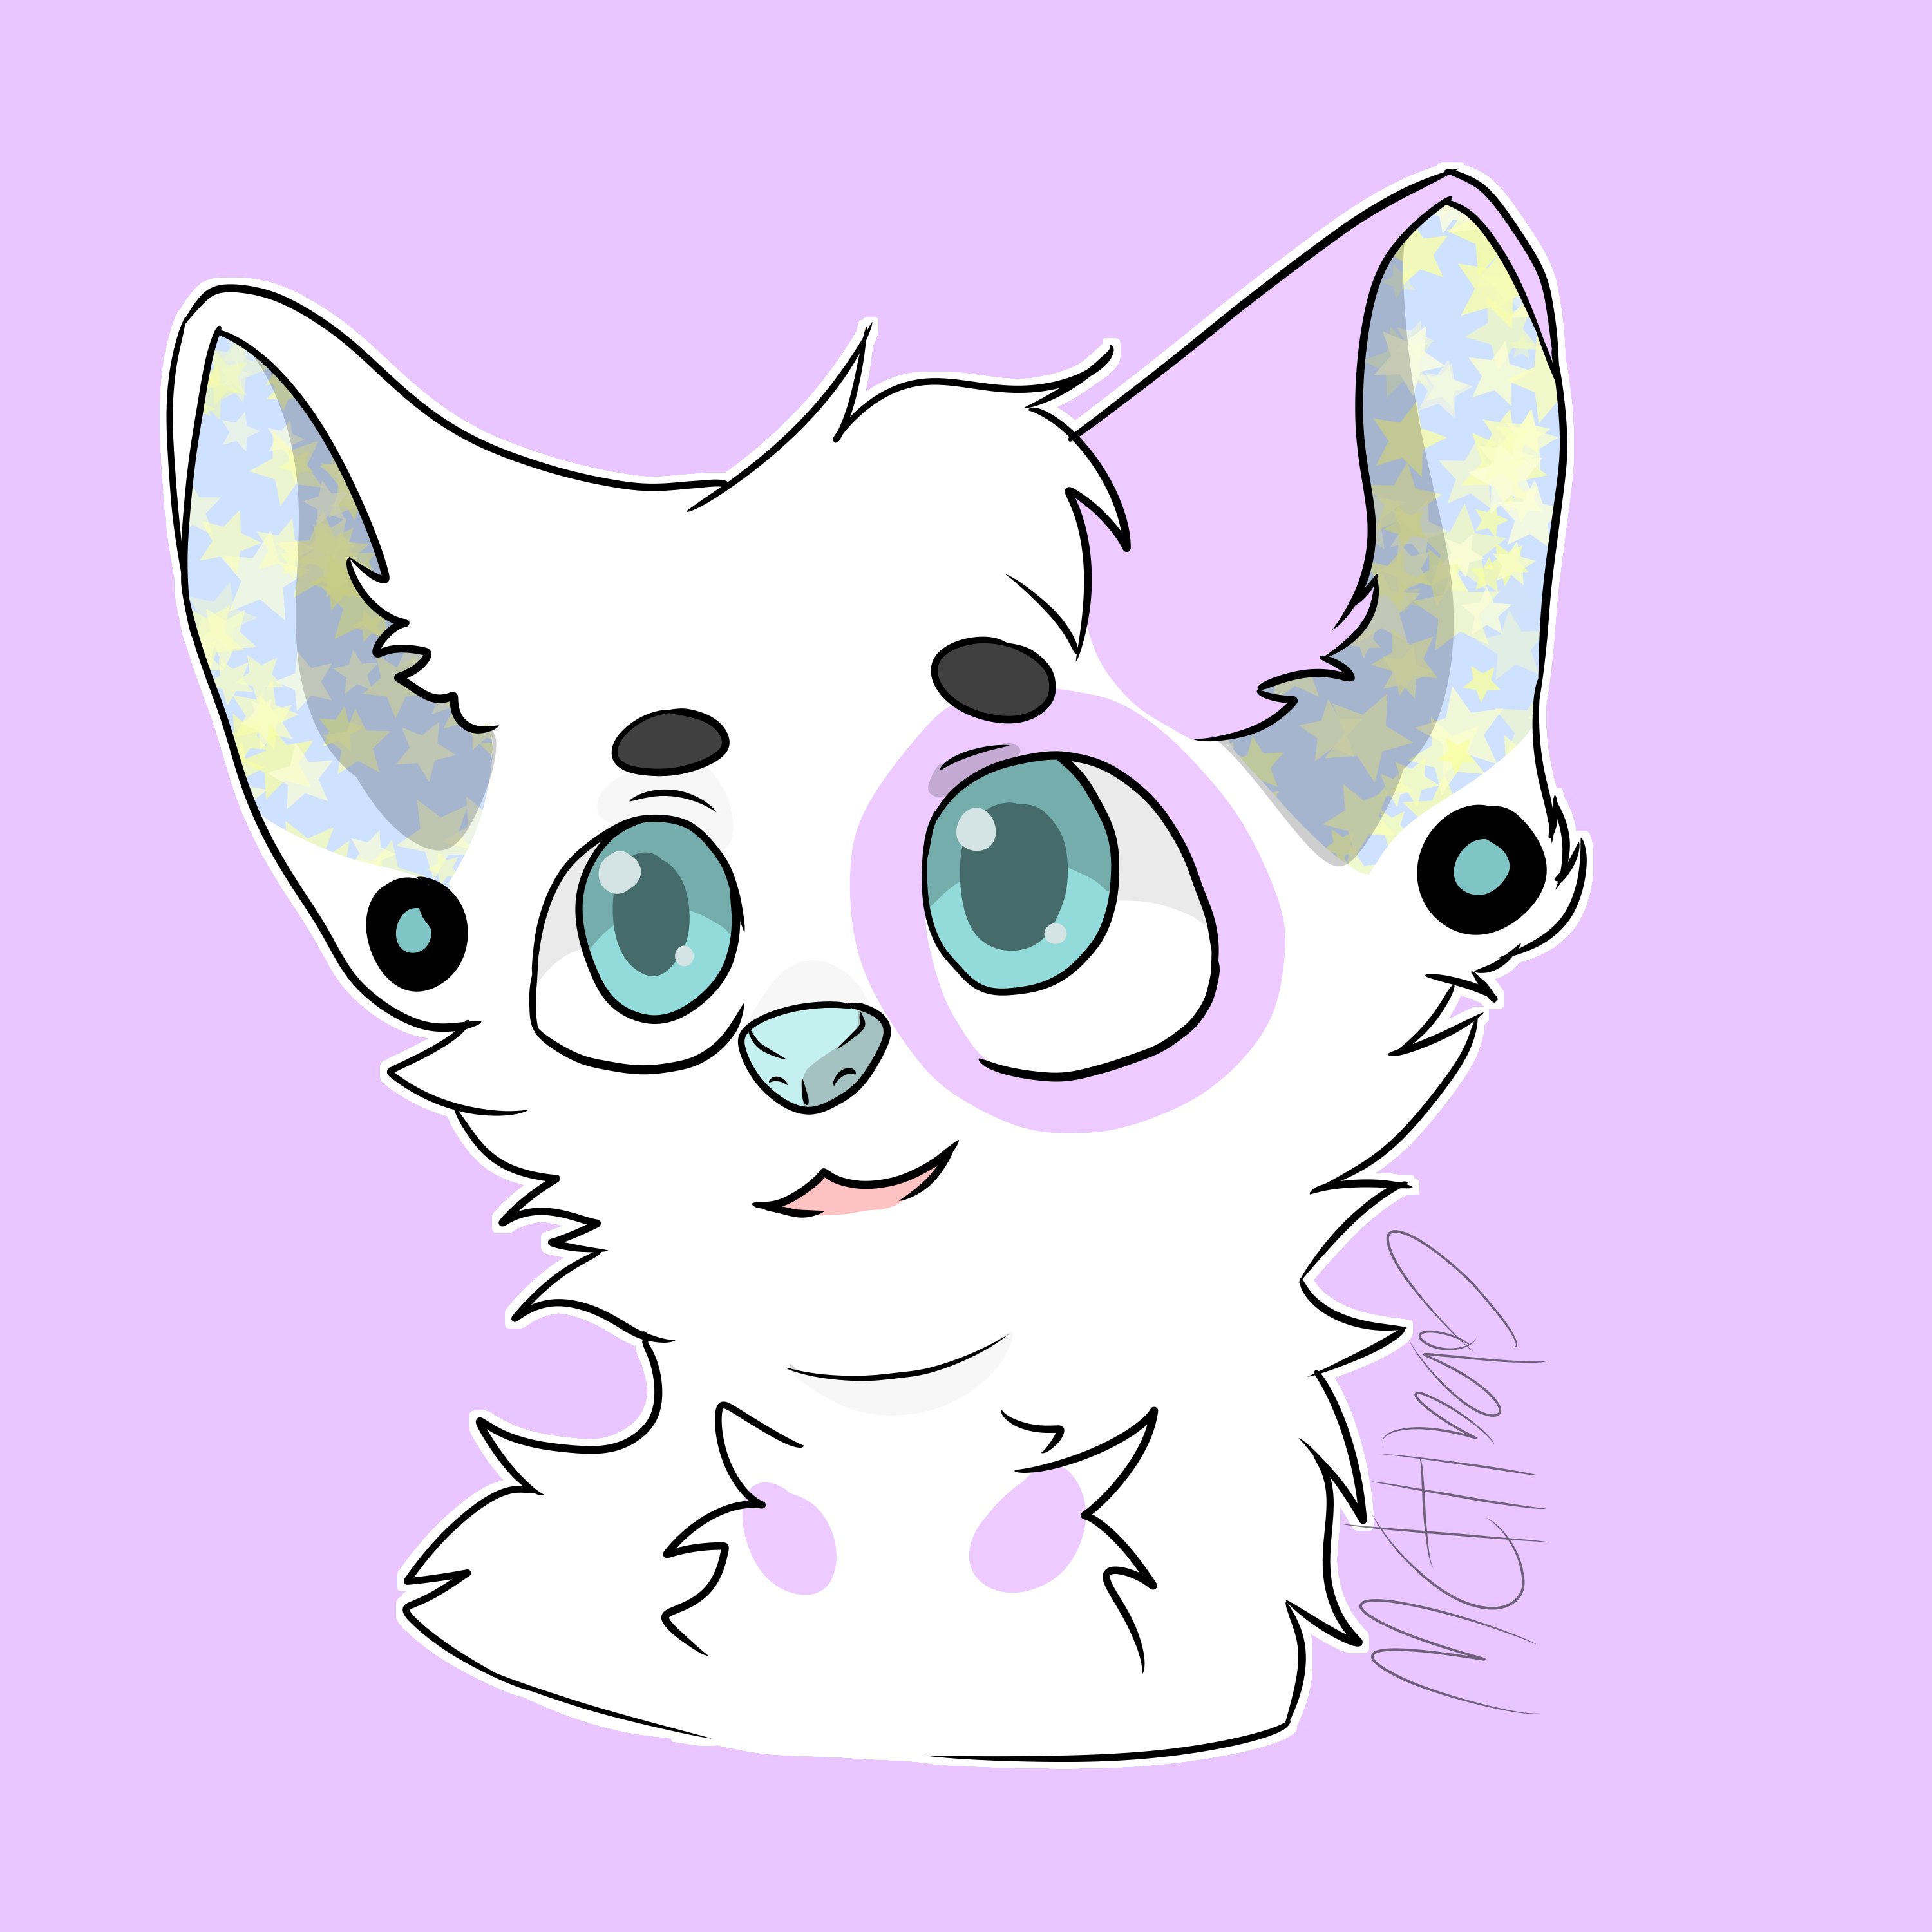 A commission on furry amino by Keatoniscool | Furry Art